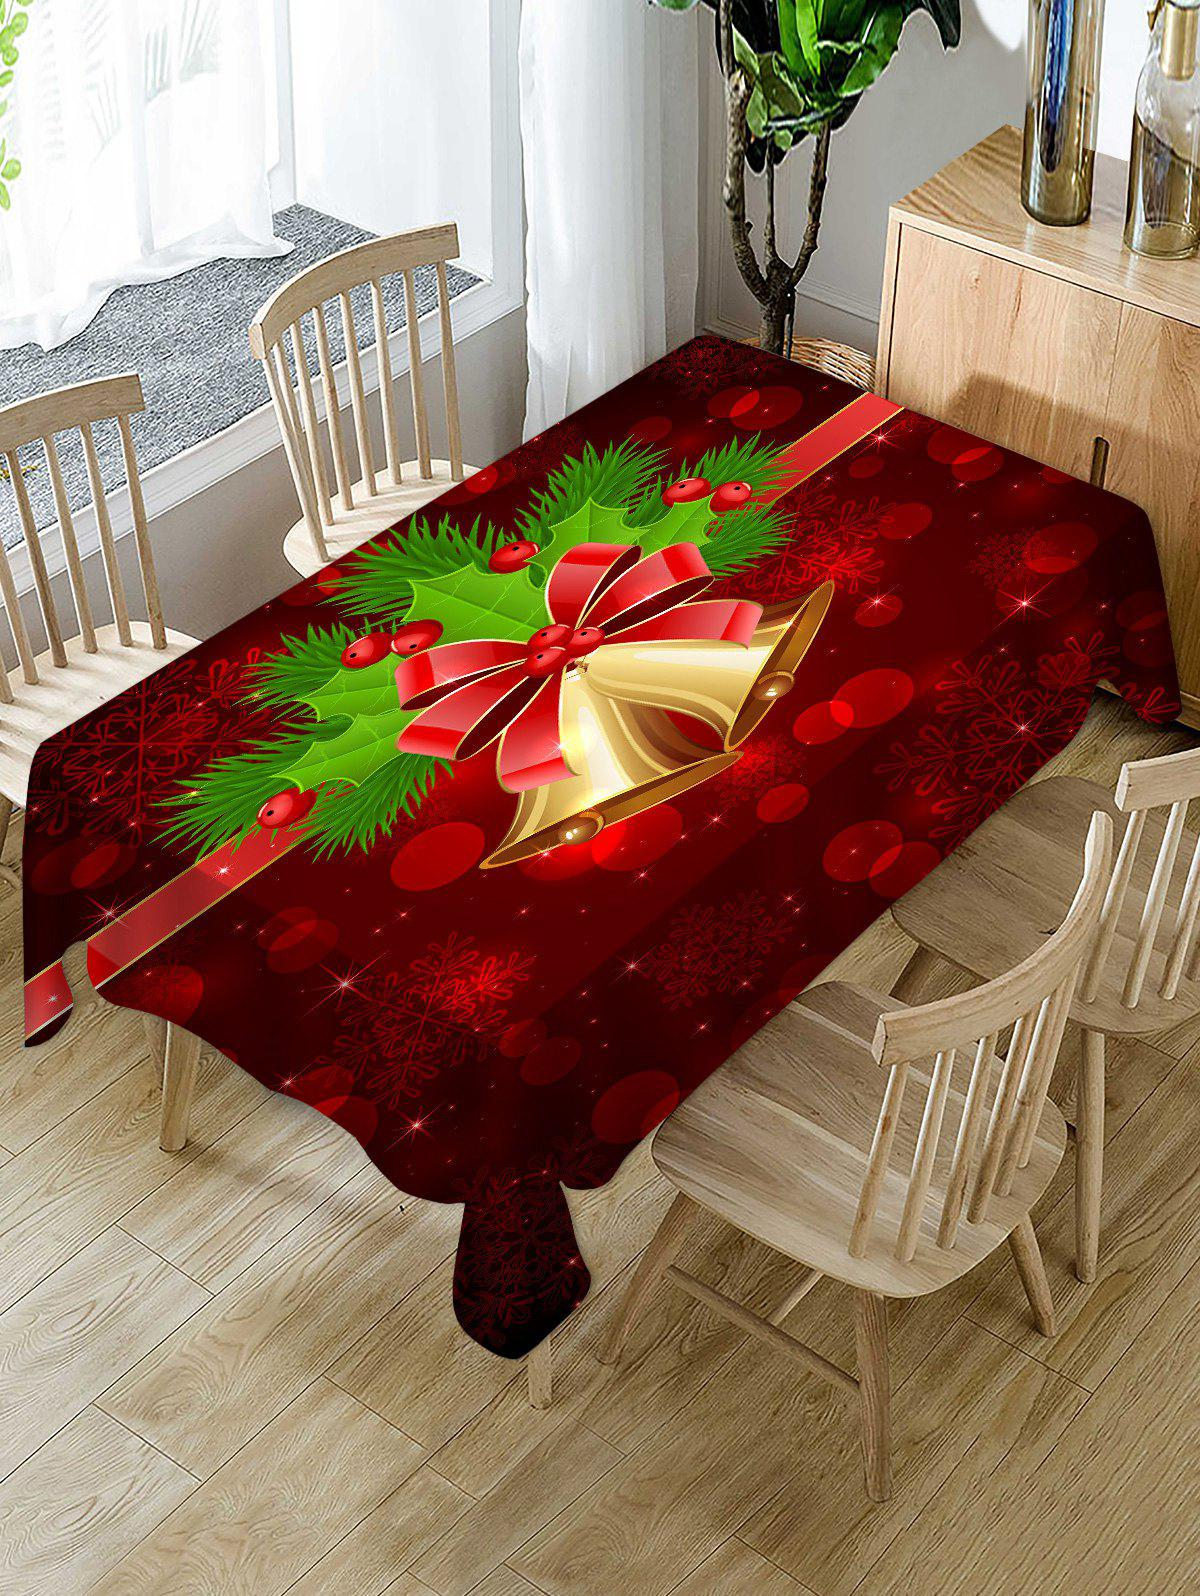 Shop Christmas Bells Berry Print Waterproof Fabric Tablecloth